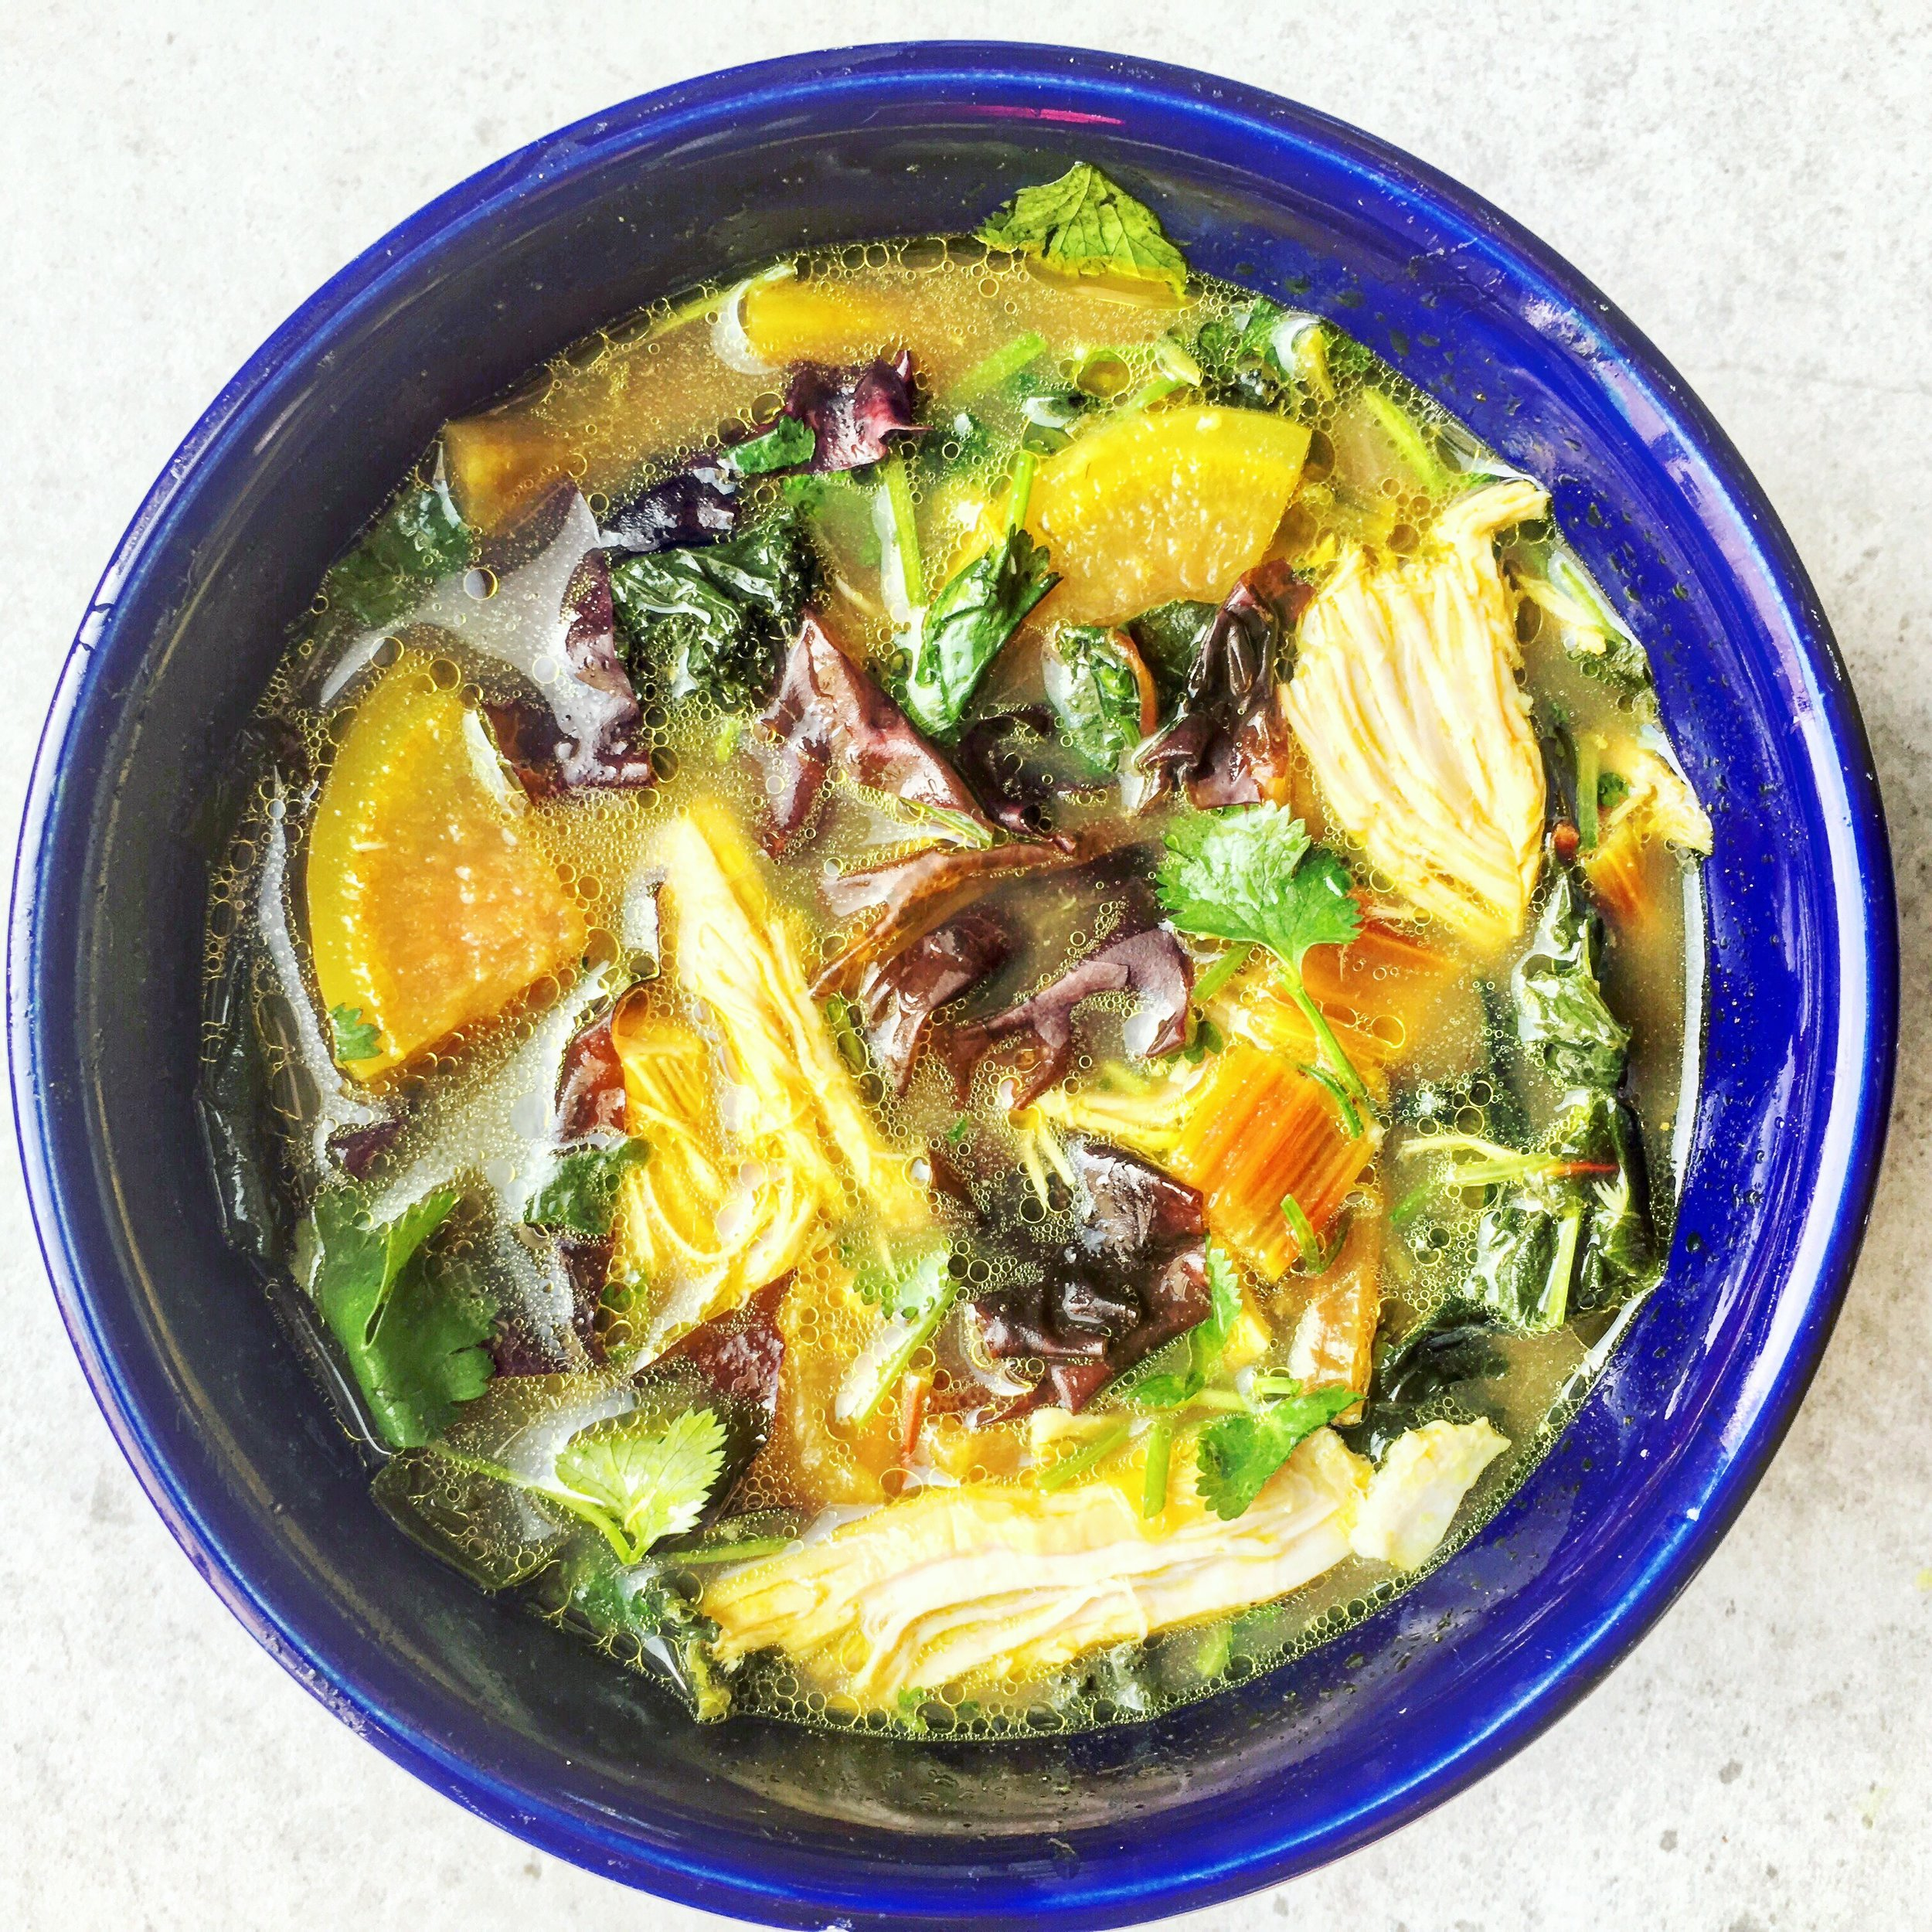 This nourishing recipe is packed with gut healing, anti-inflammatory ingredients that stimulate digestion and support all aspects of health. It's high mineral content and detoxifying nutrients boost it's healing potential. There are unlimited combinations of spices and vegetables that can be used to customize the recipe